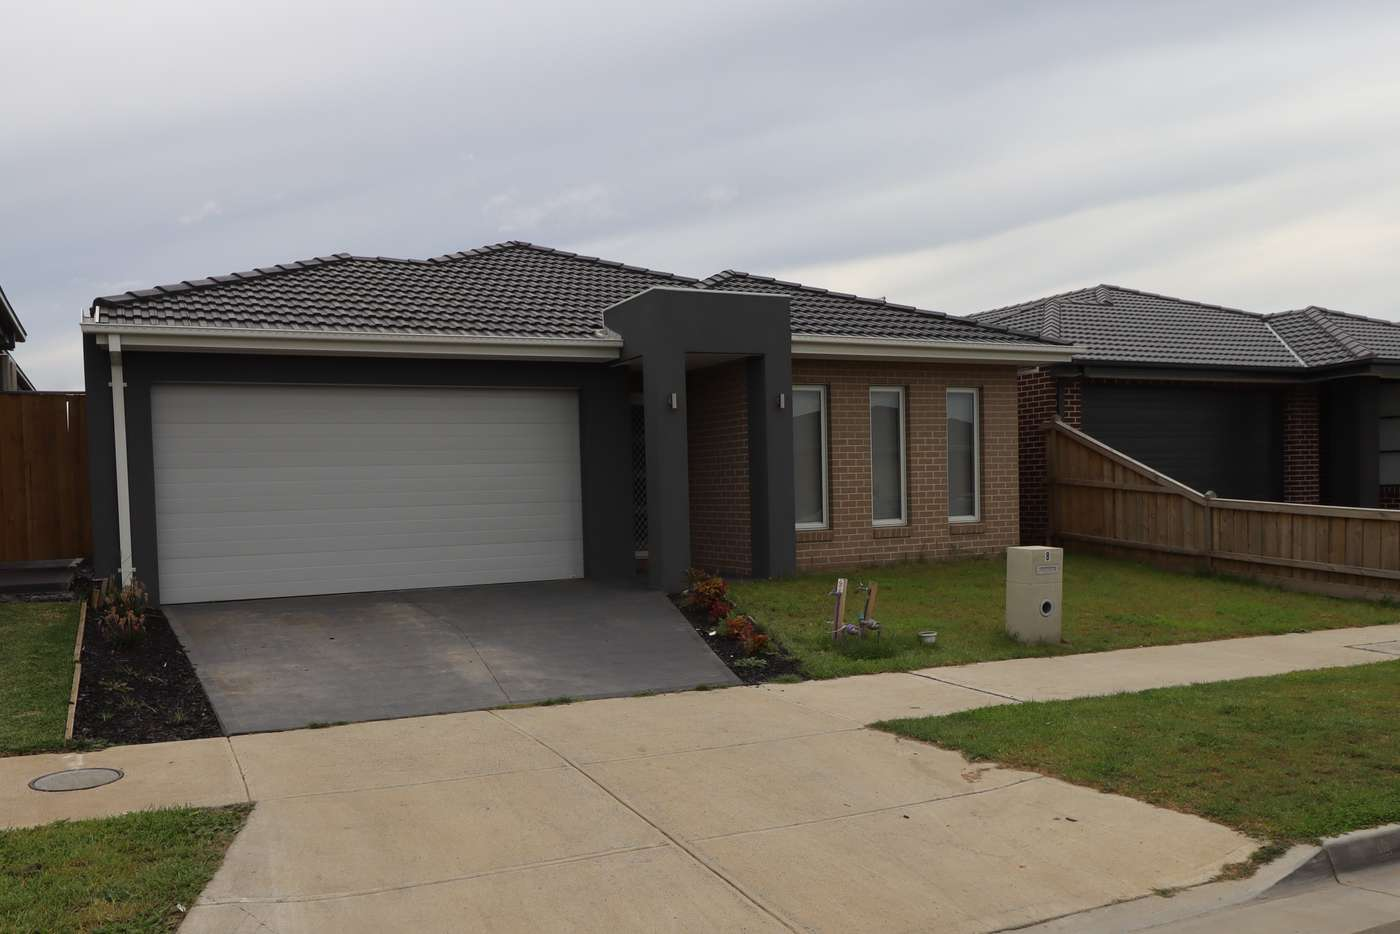 Main view of Homely house listing, 8 Gemma Street, Cranbourne East VIC 3977